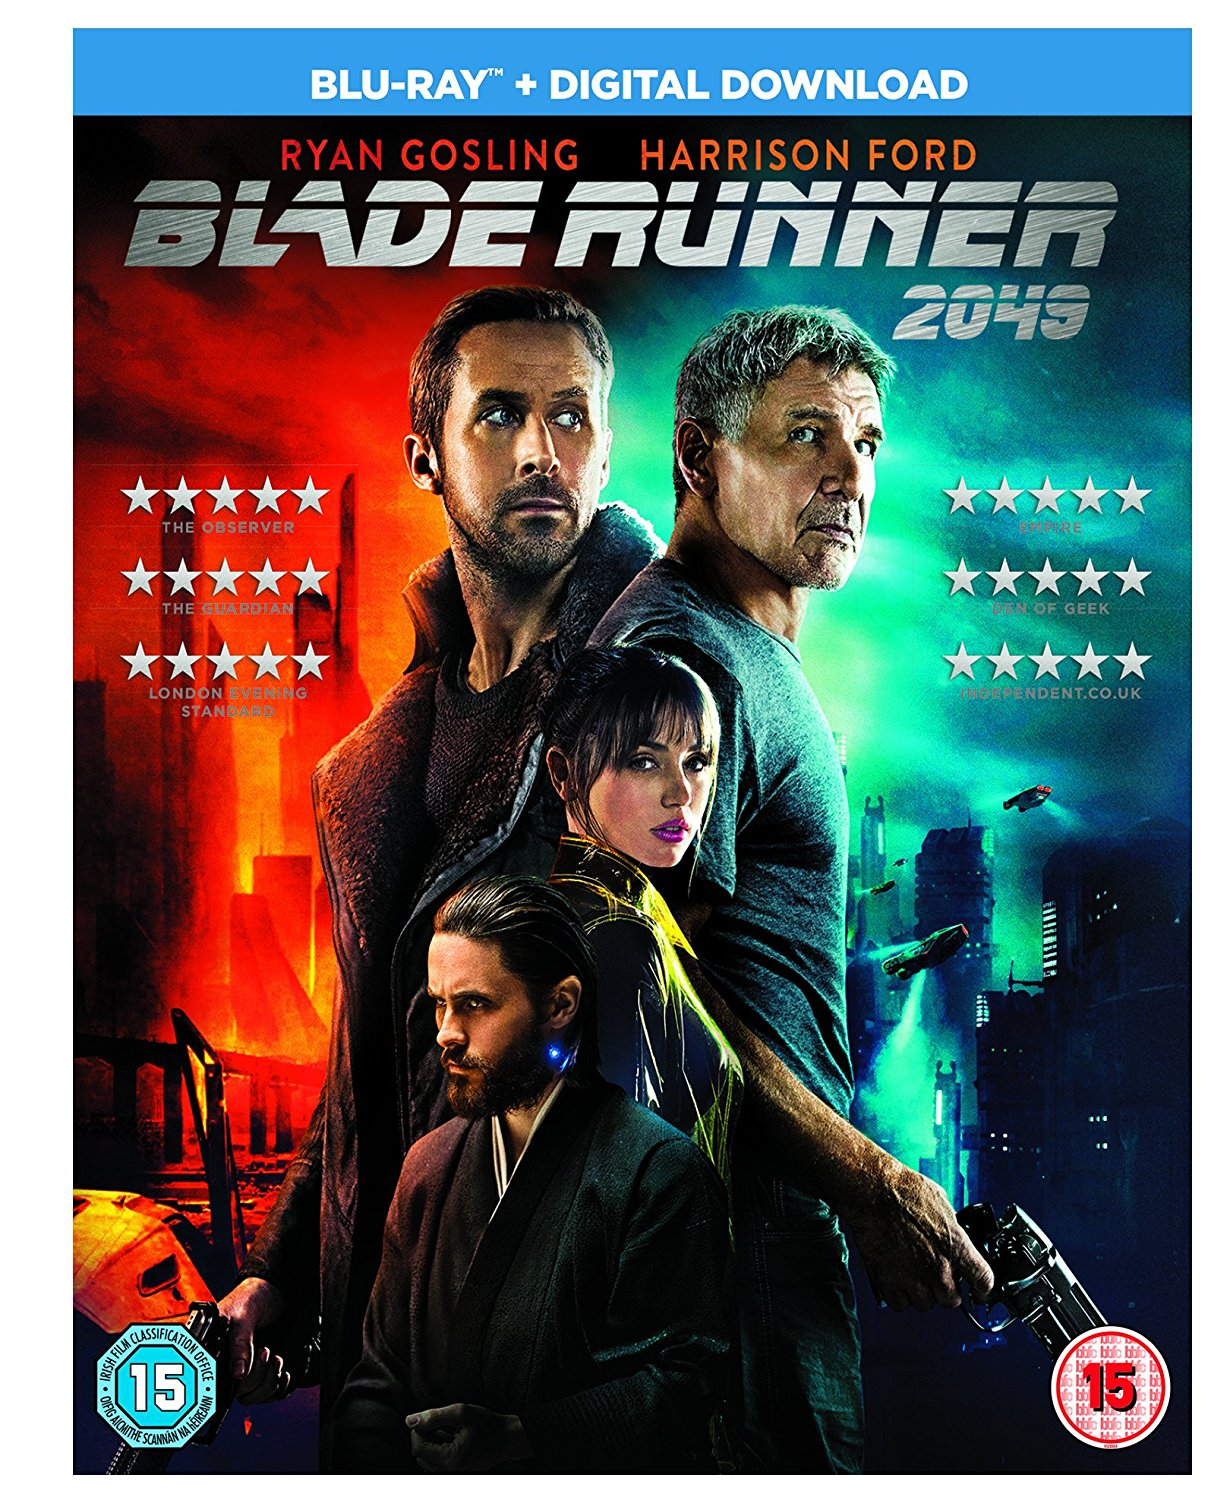 Beyond Humanity A New Dawn Emerges As BLADE RUNNER 2049 Comes To Blu Ray And DVD All Images WARNER BROTHERS